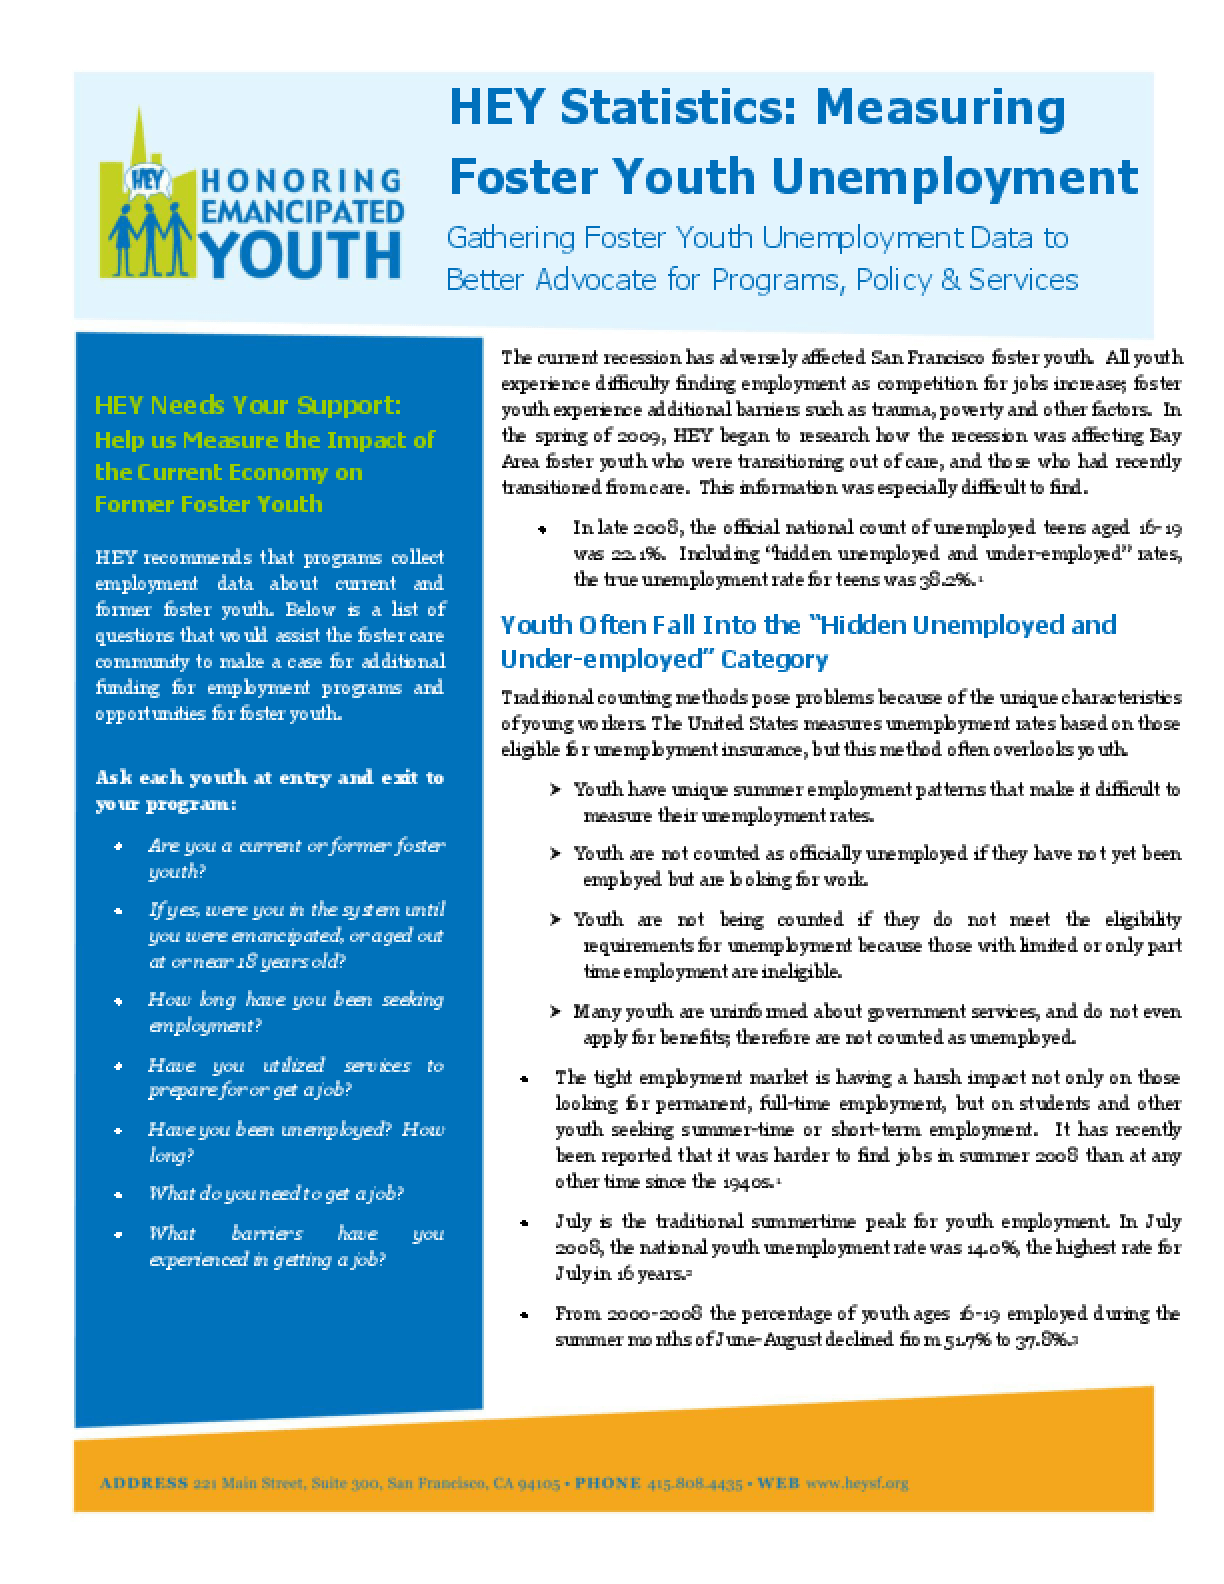 HEY Statistics: Measuring Foster Youth Unemployment